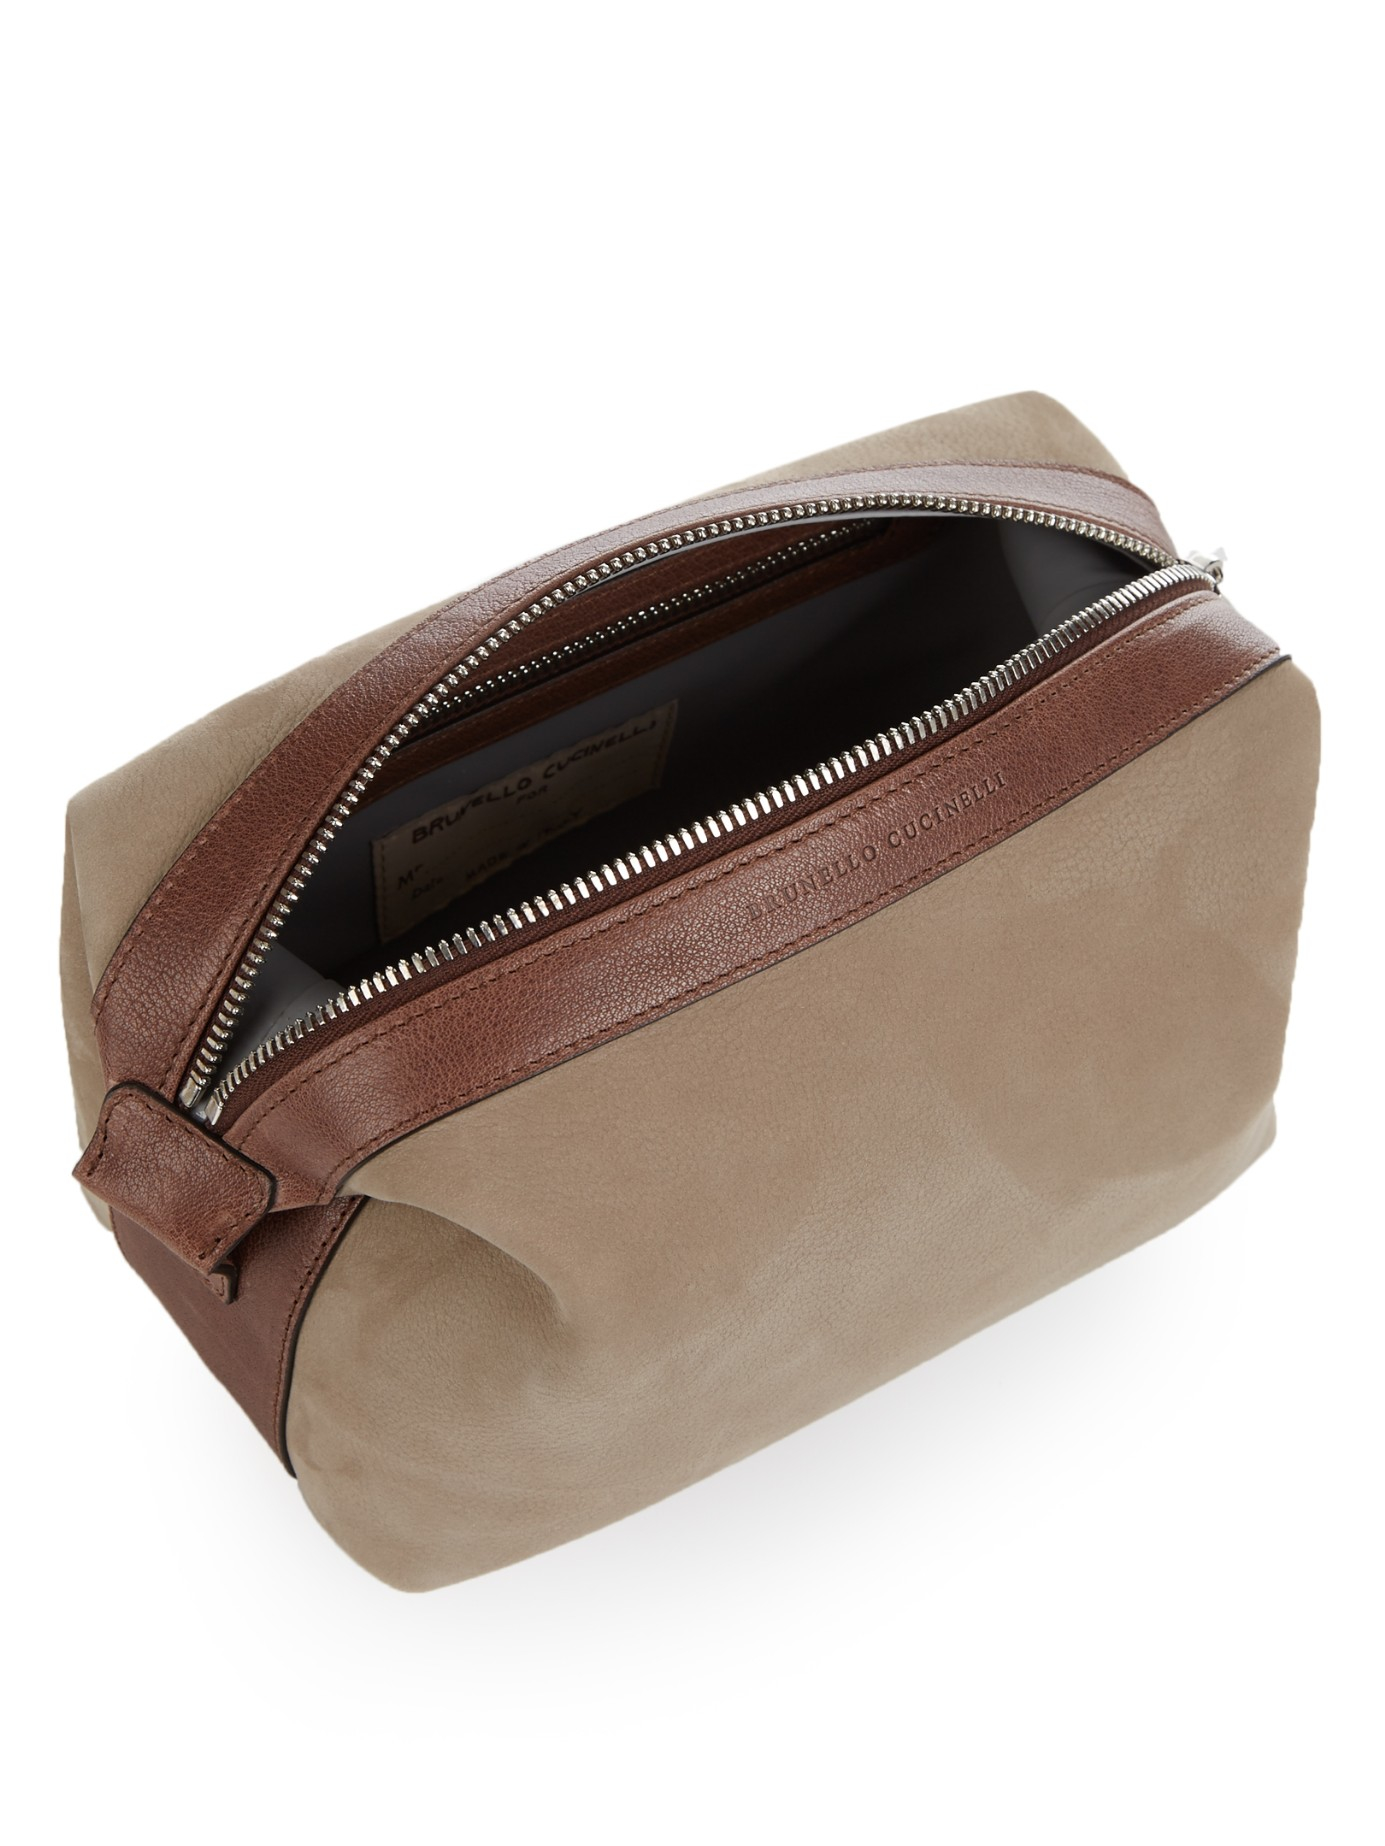 86c609495452 Lyst - Brunello Cucinelli Grained Leather Washbag in Brown for Men